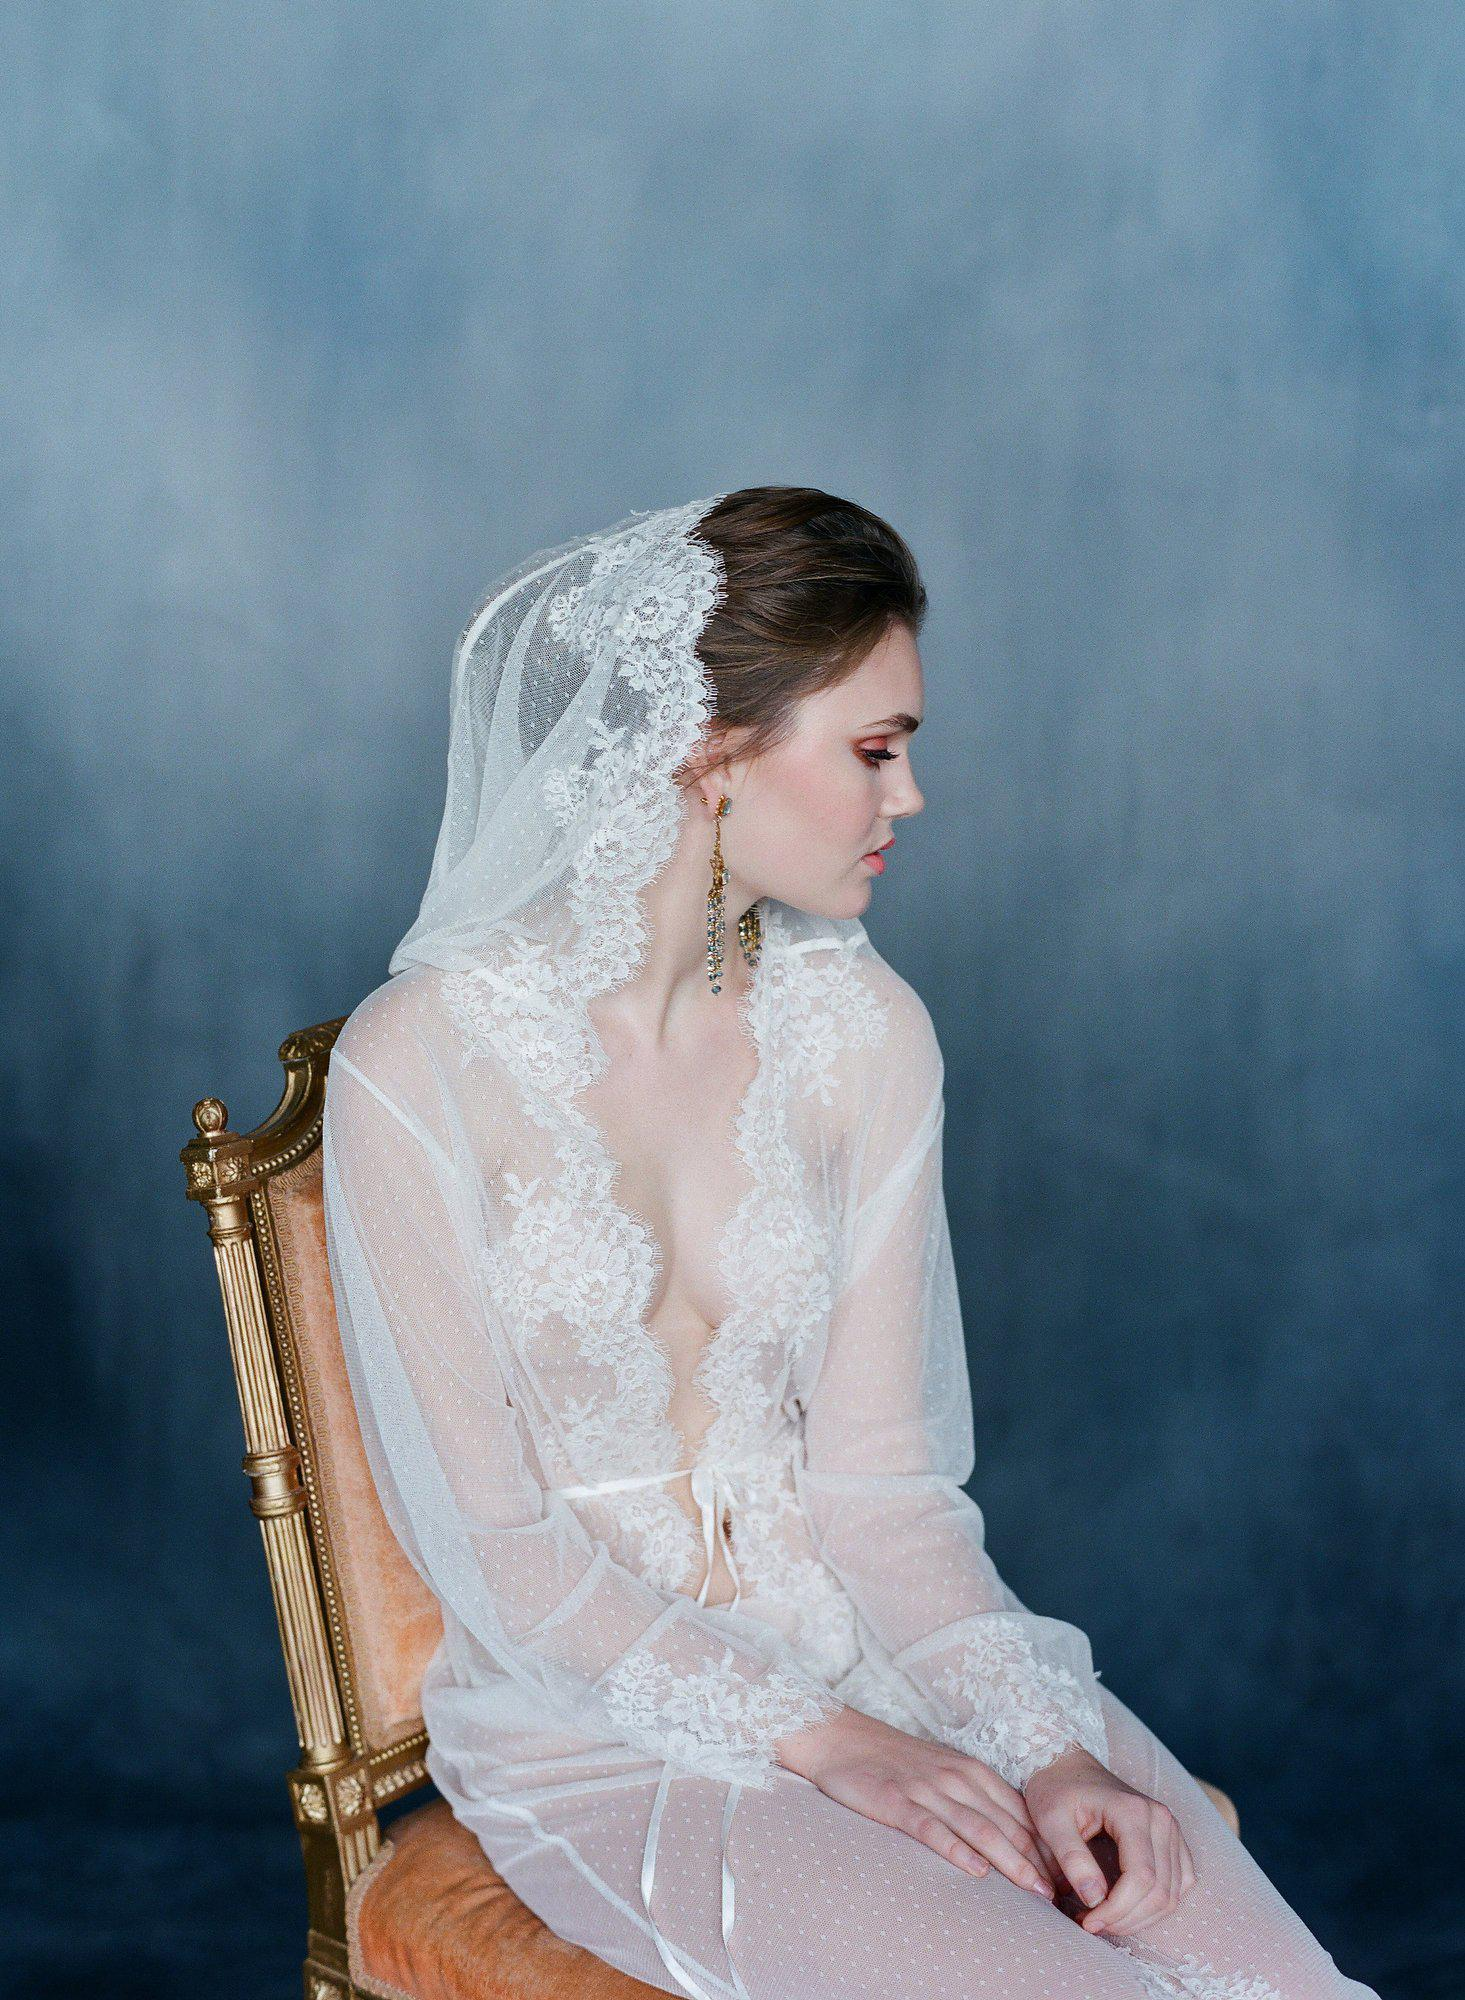 Bride wearing long lace robe